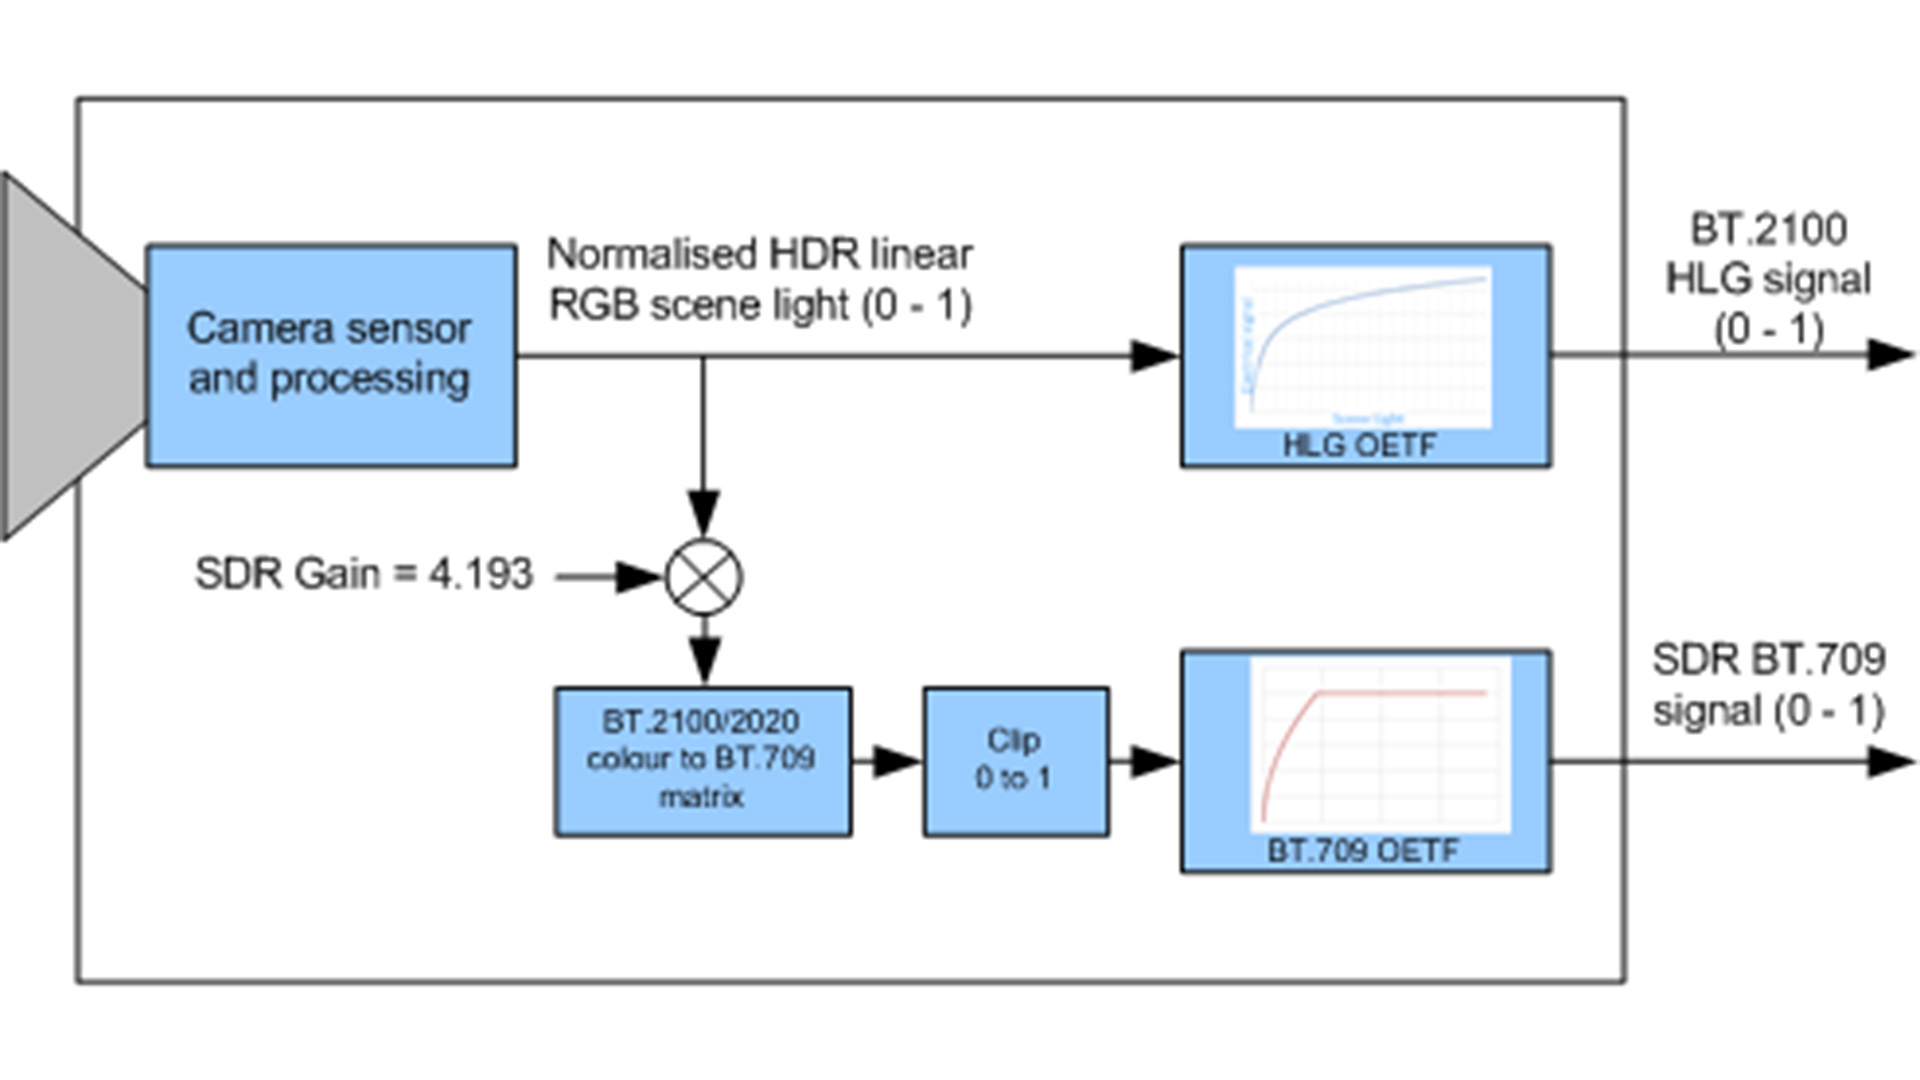 A flowchart showing the processing done within an HDR camera.